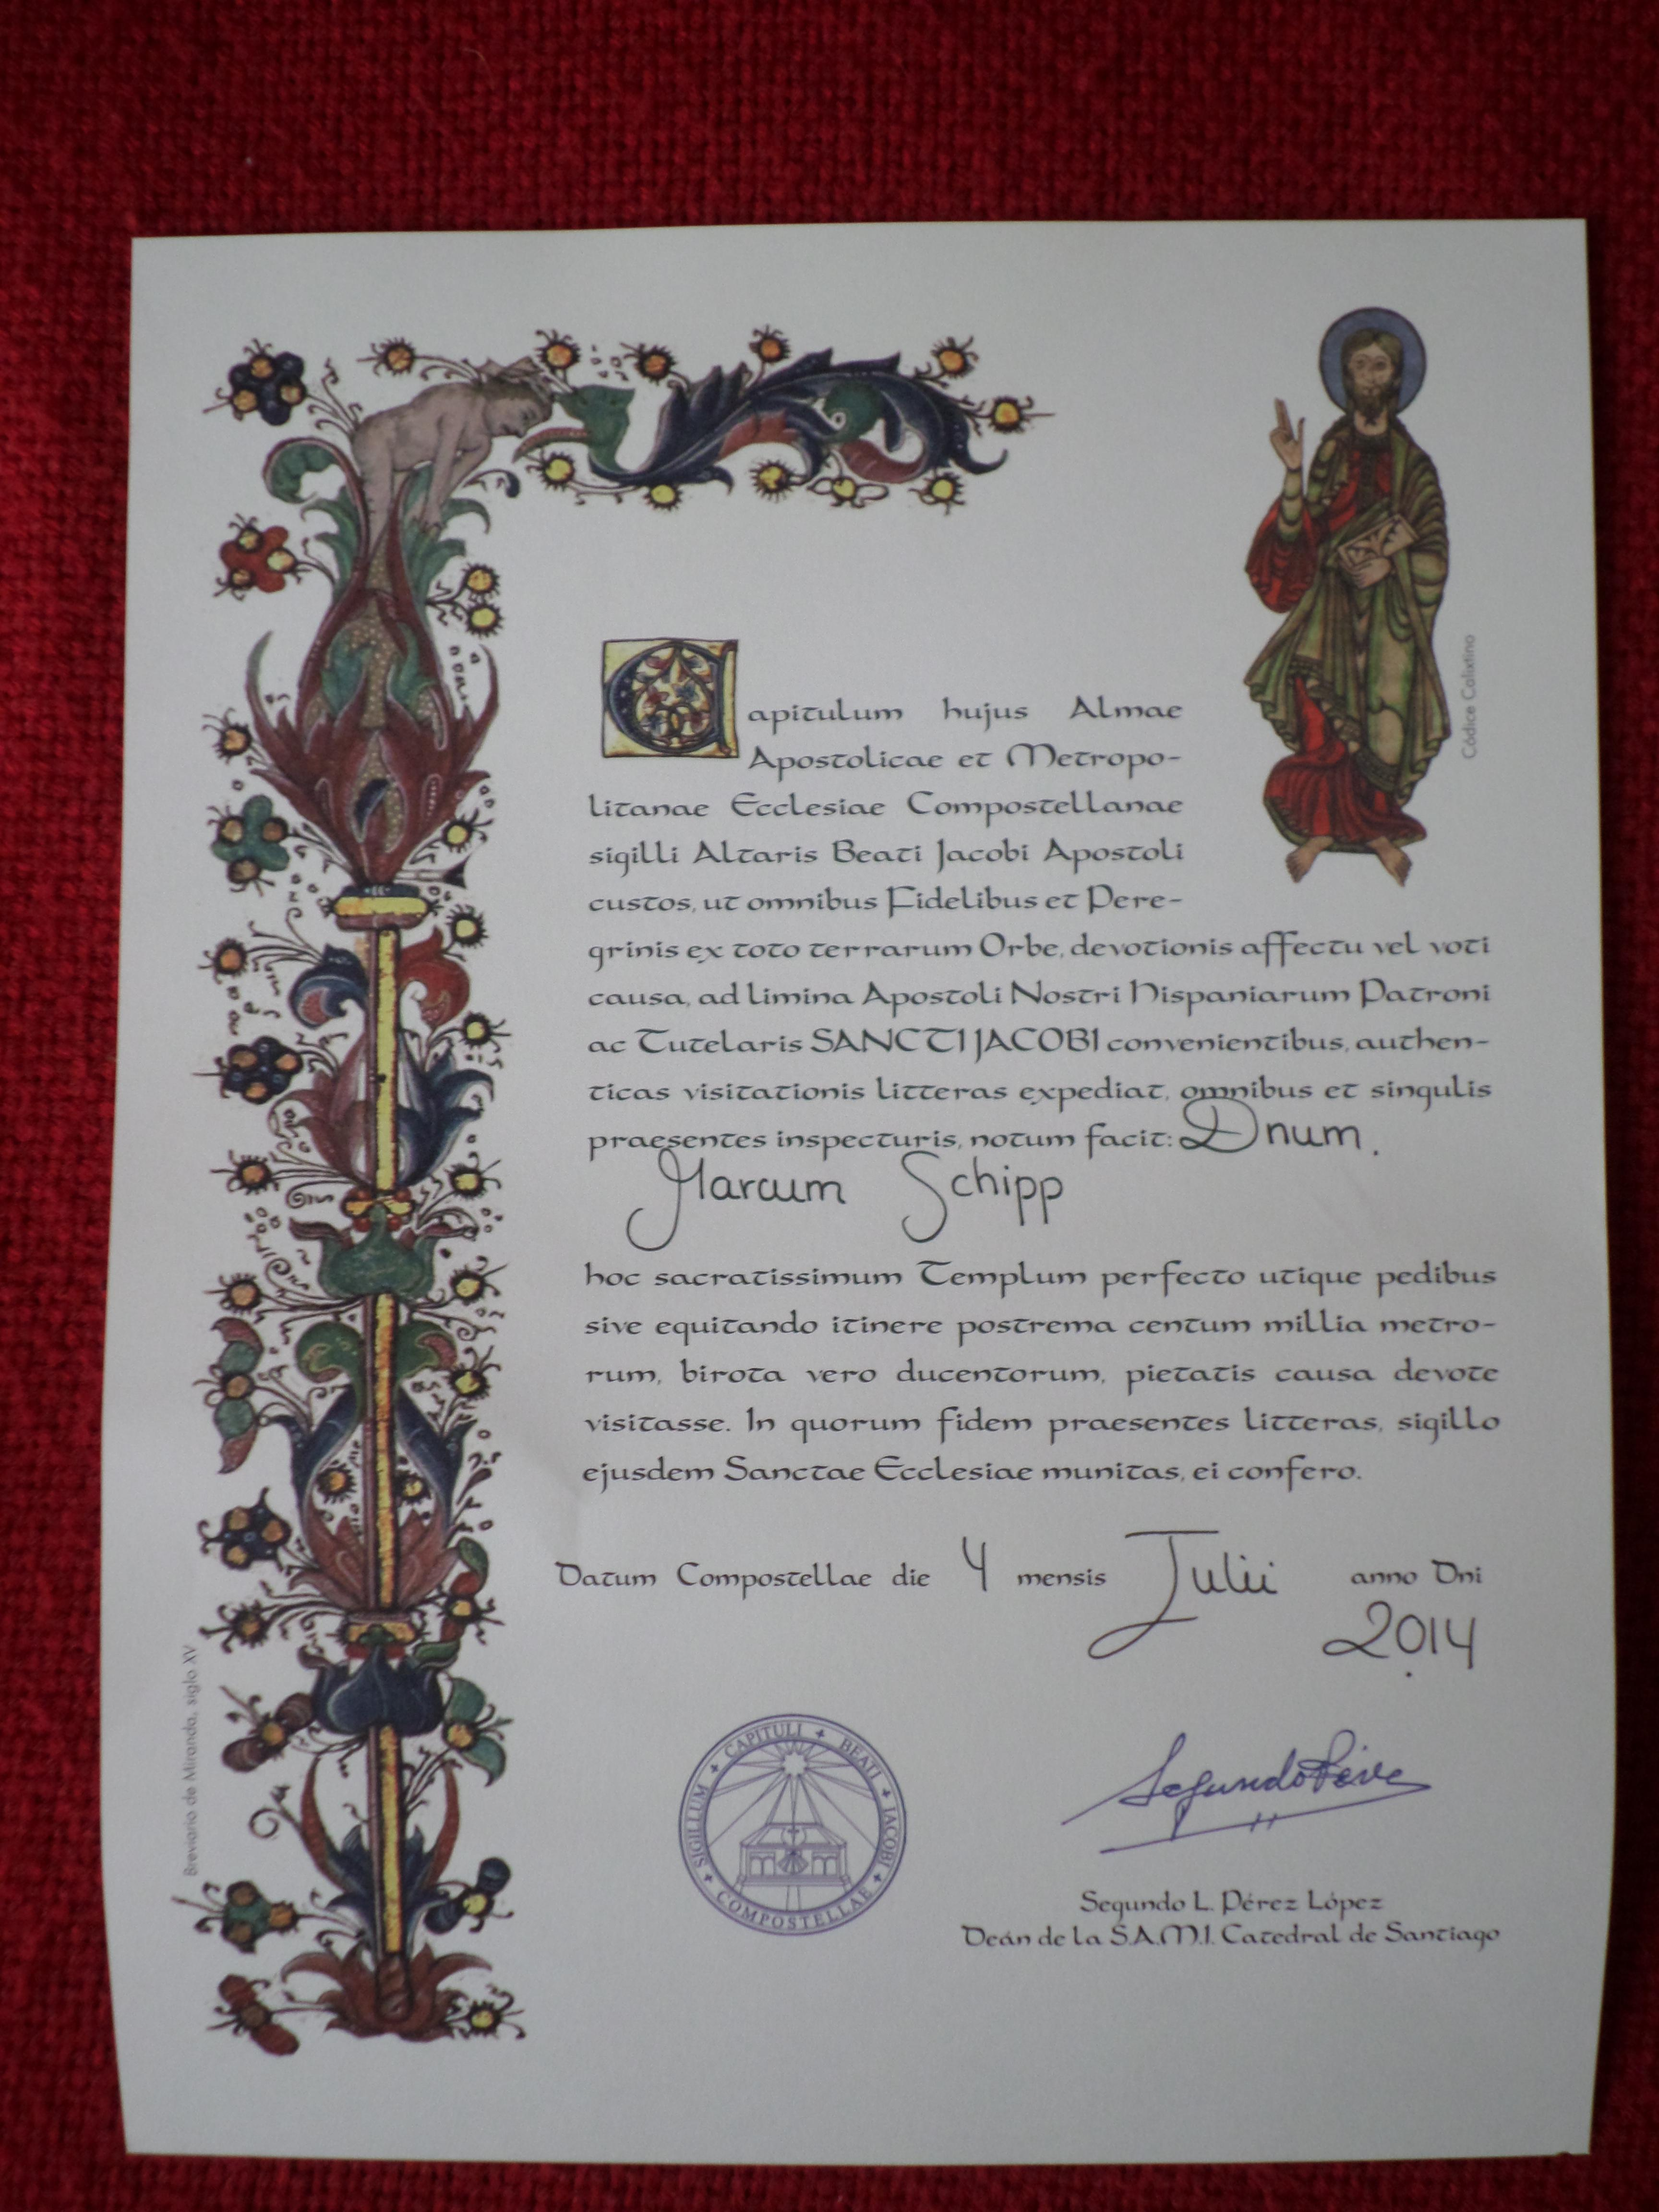 Photo of a compostela certificate